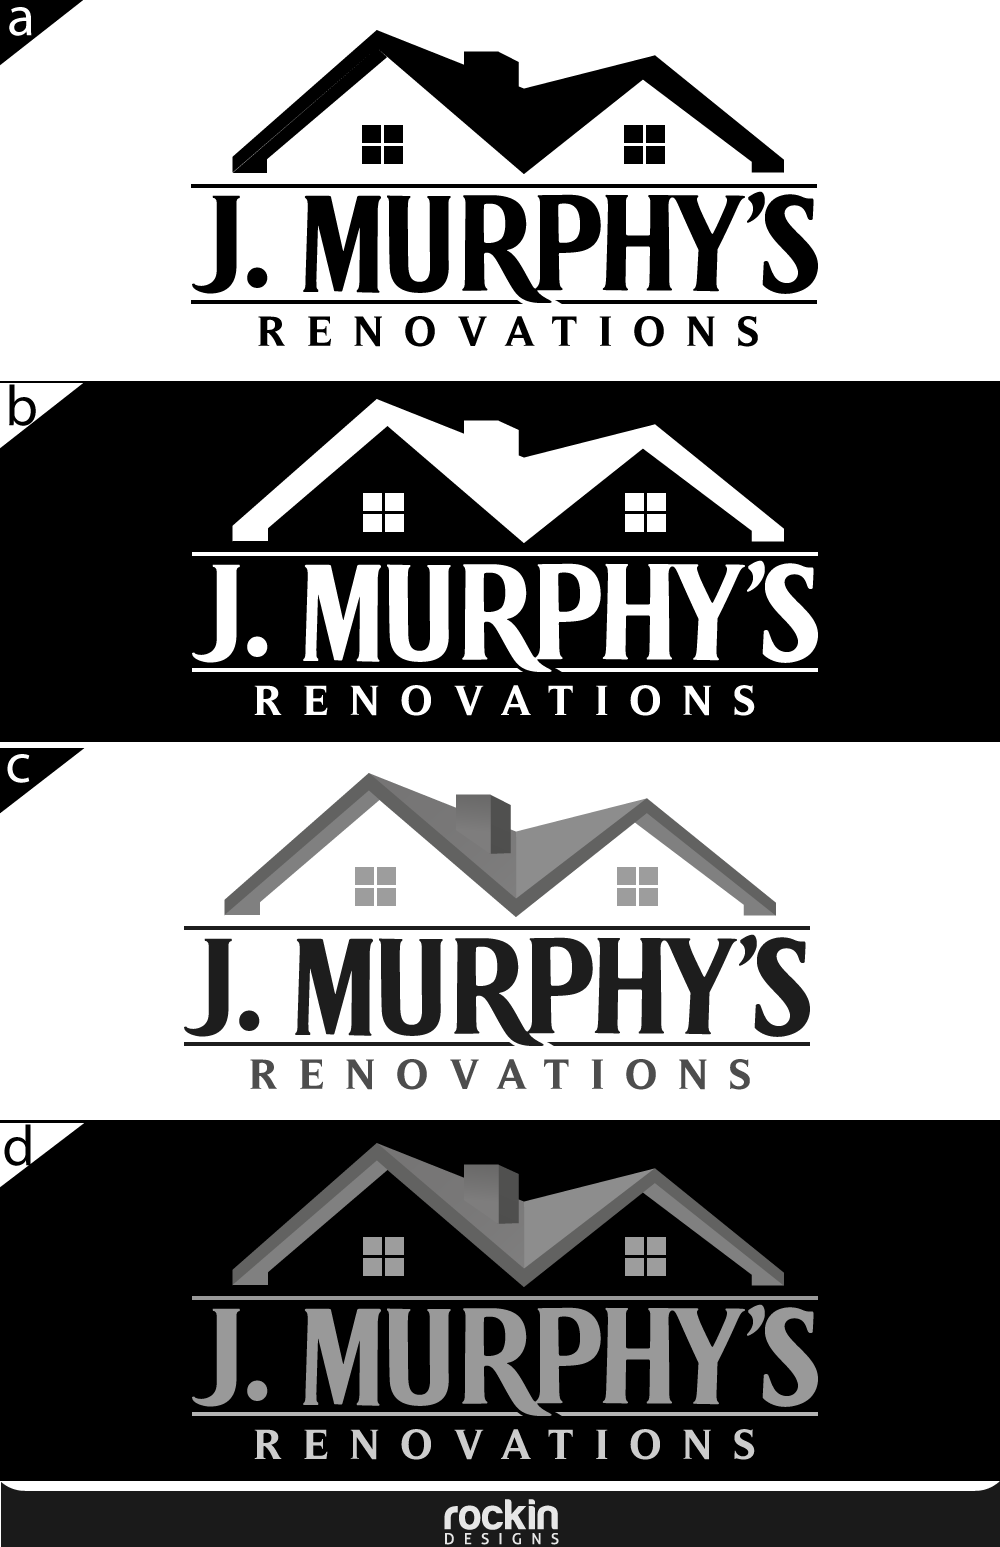 Logo Design by rockin - Entry No. 103 in the Logo Design Contest J. Murphy's Renovations Logo Design.